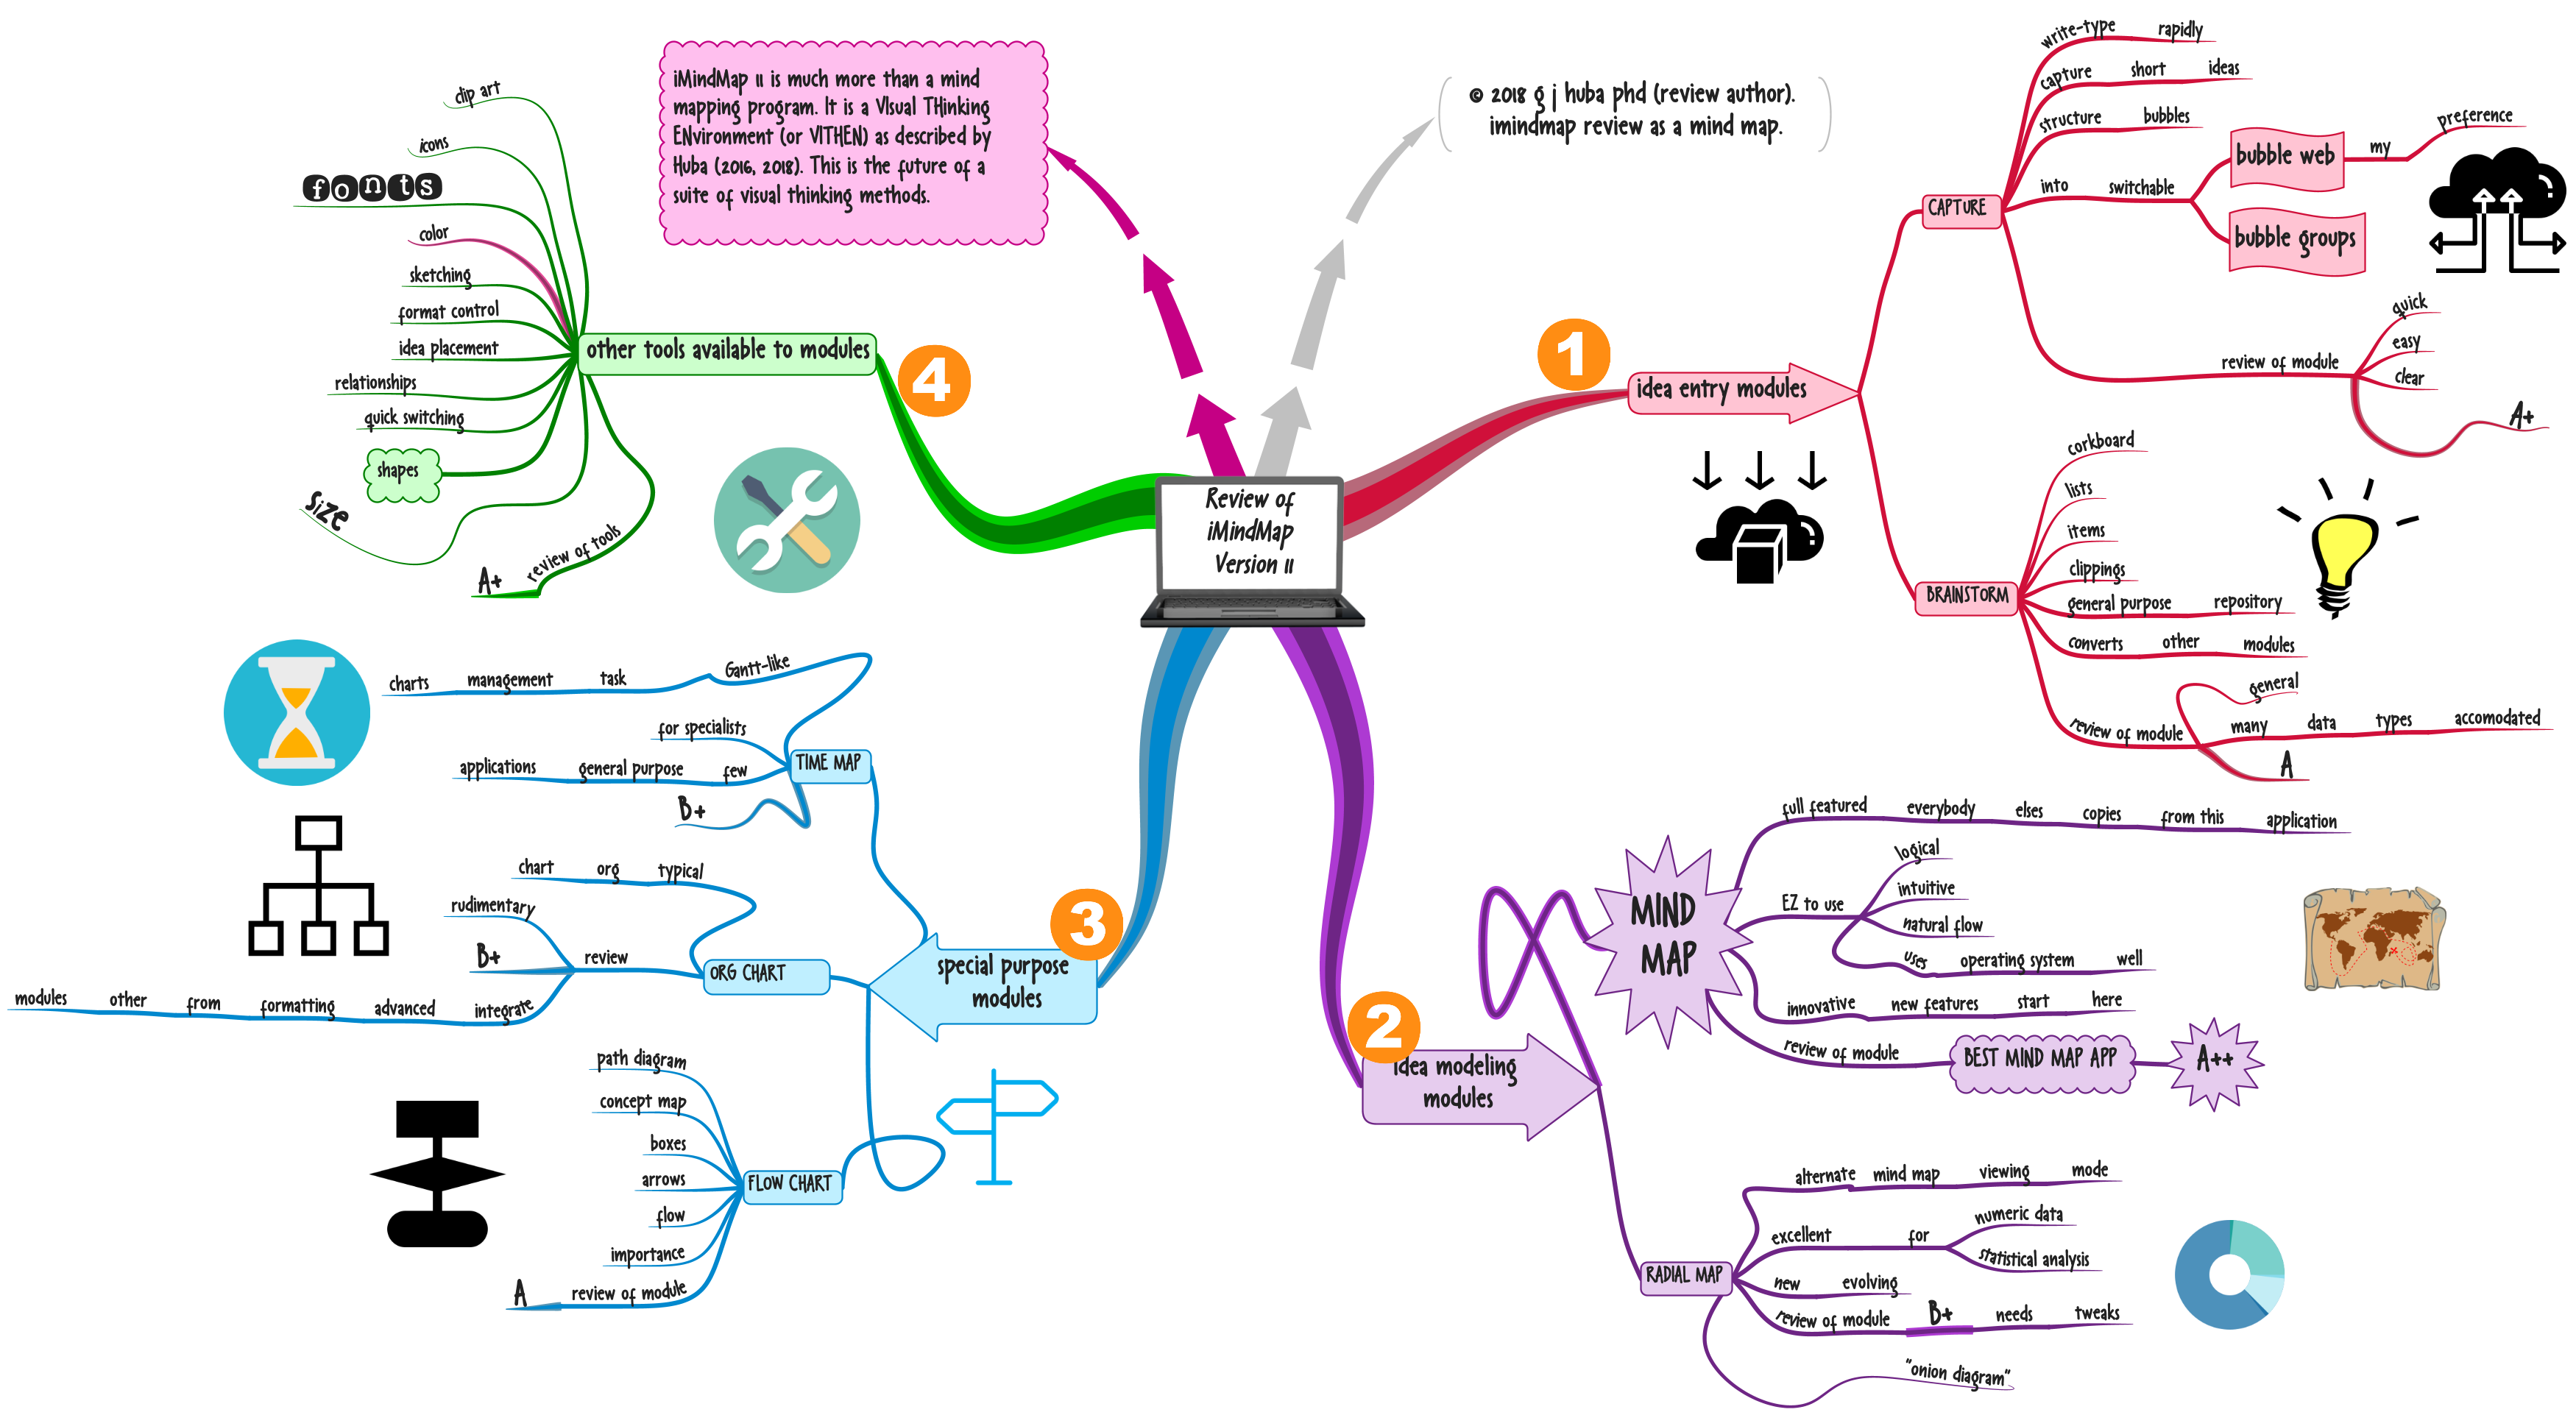 Review Of Imindmap 11 The Best Visual Thinking Environment Available In 2018 By G J Huba Phd Hubaisms Bloopers Deleted Director S Cut